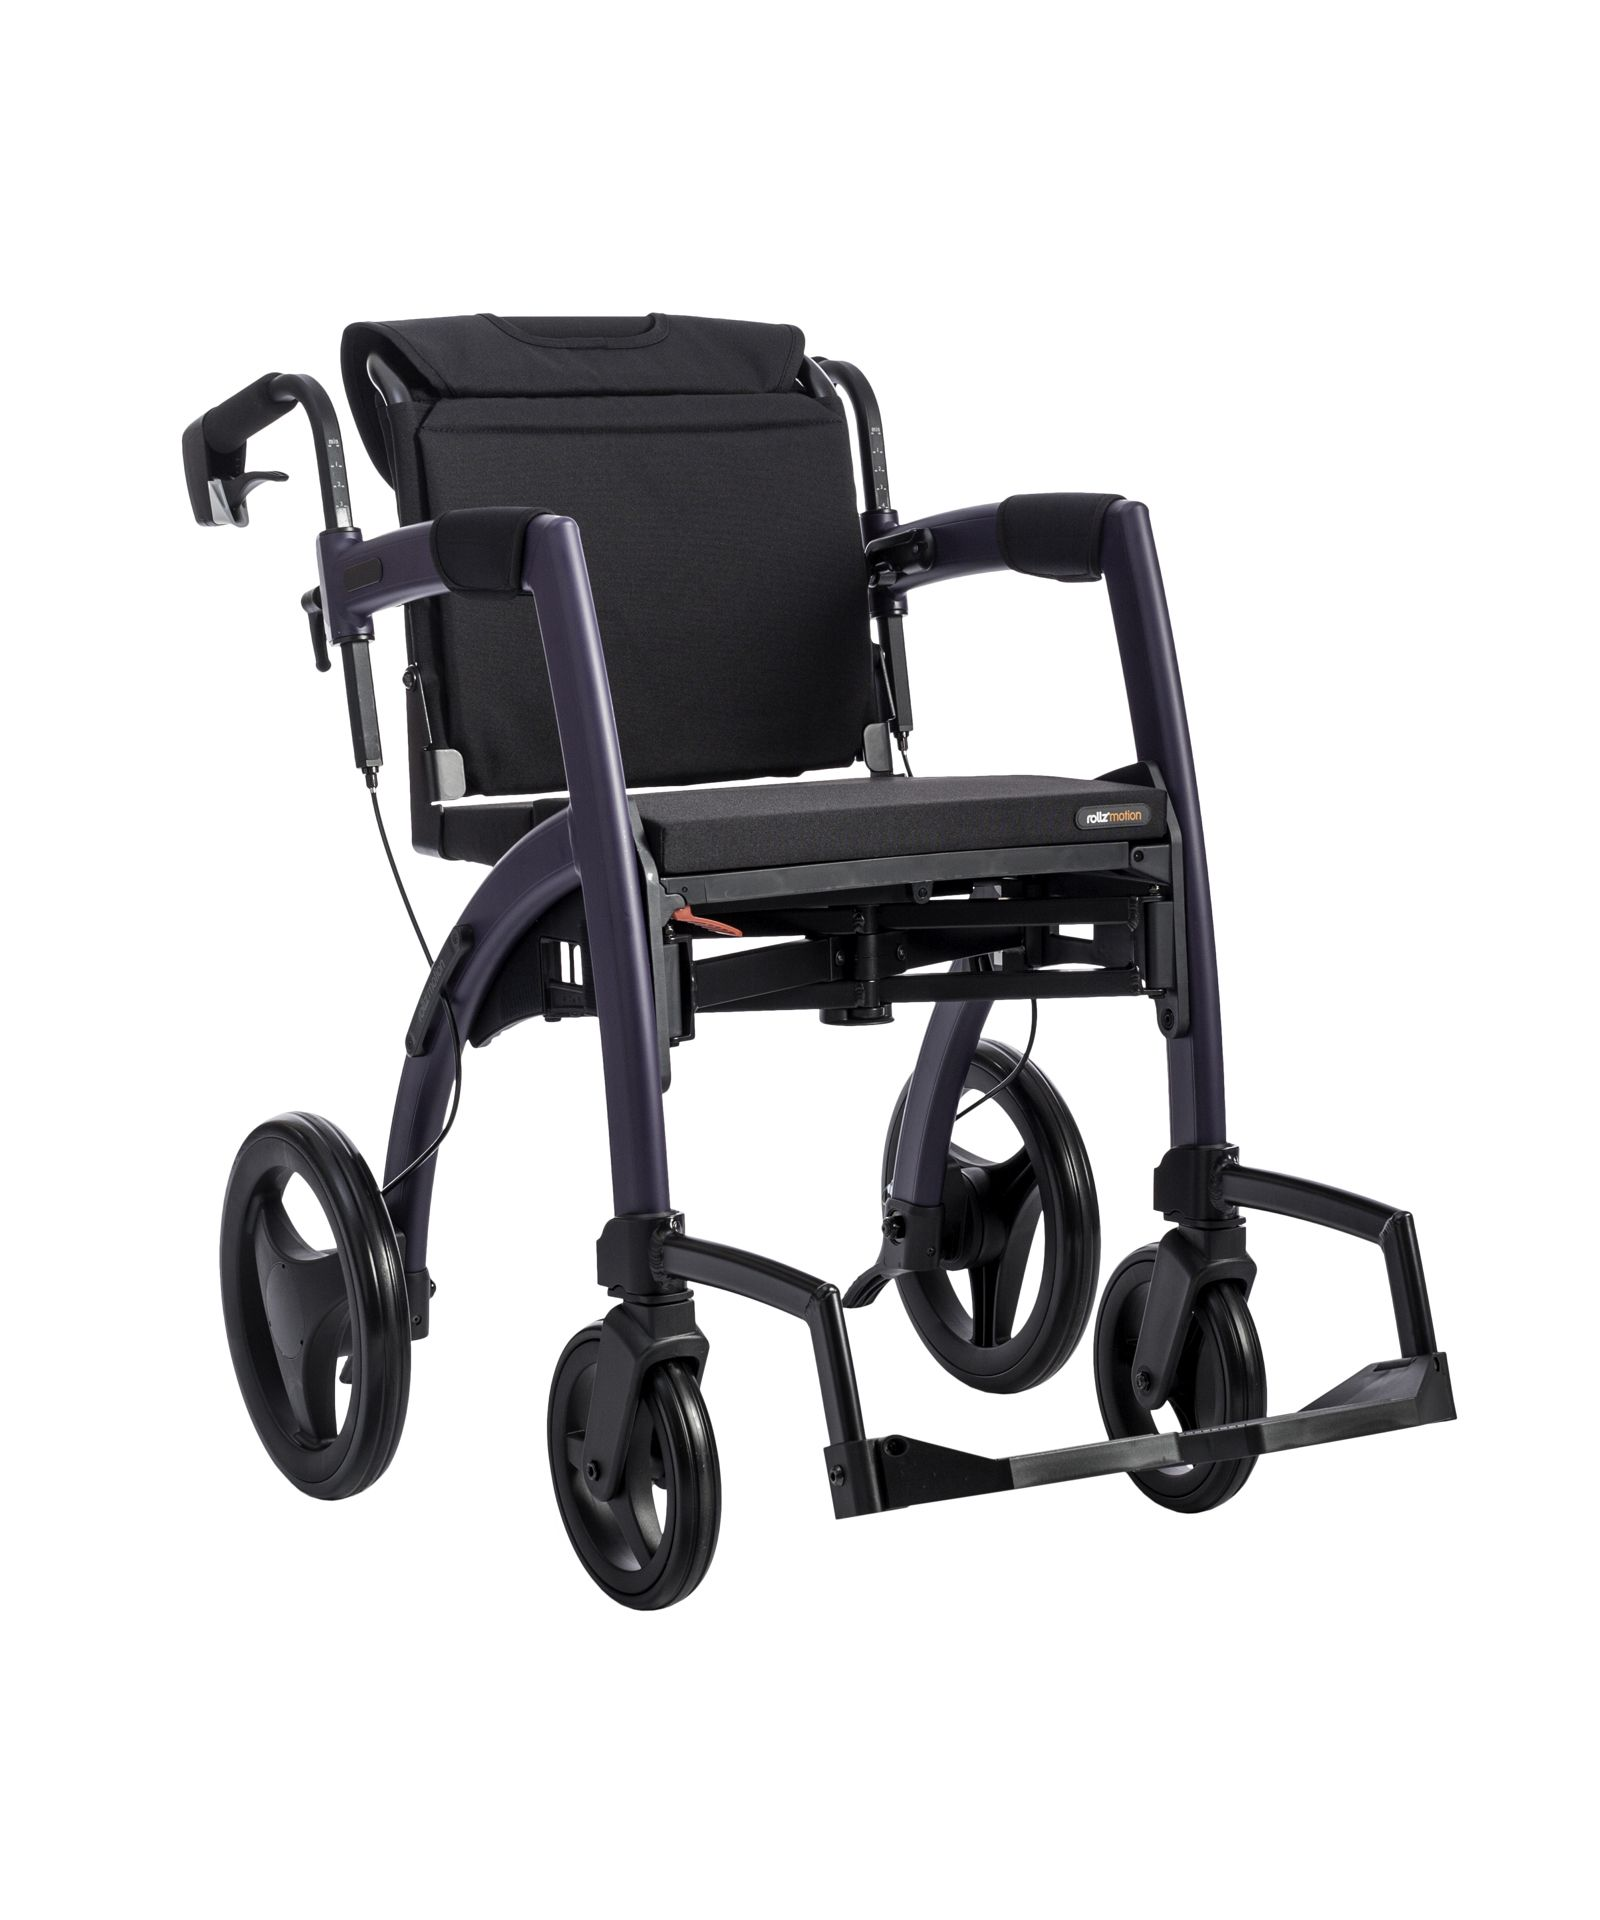 Motion rollator, the 2in1 rollator and wheelchair in